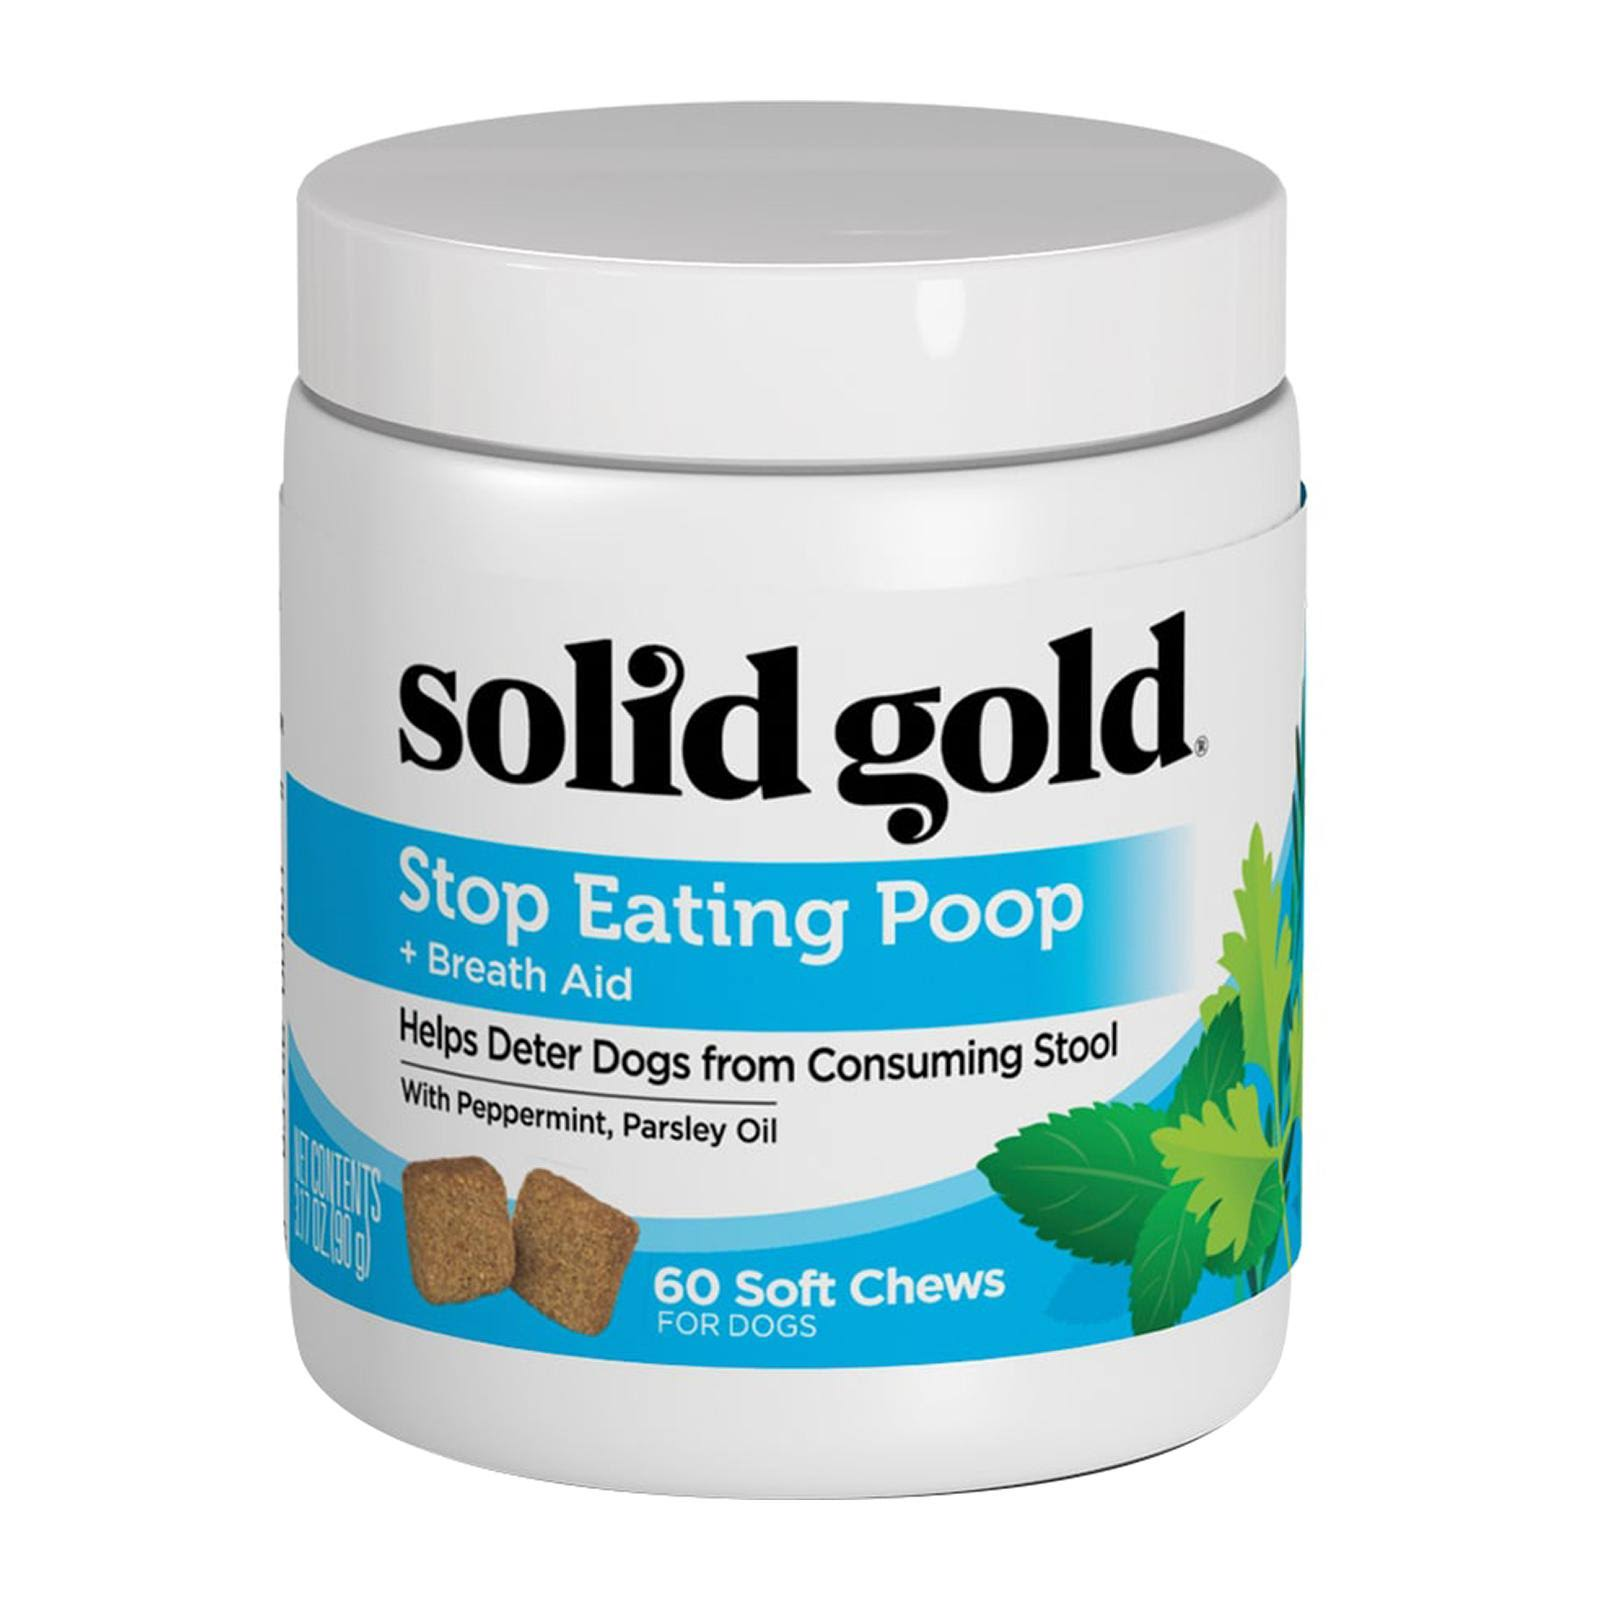 Solid Gold Stop Eating Poop Dog Chews - 60ct